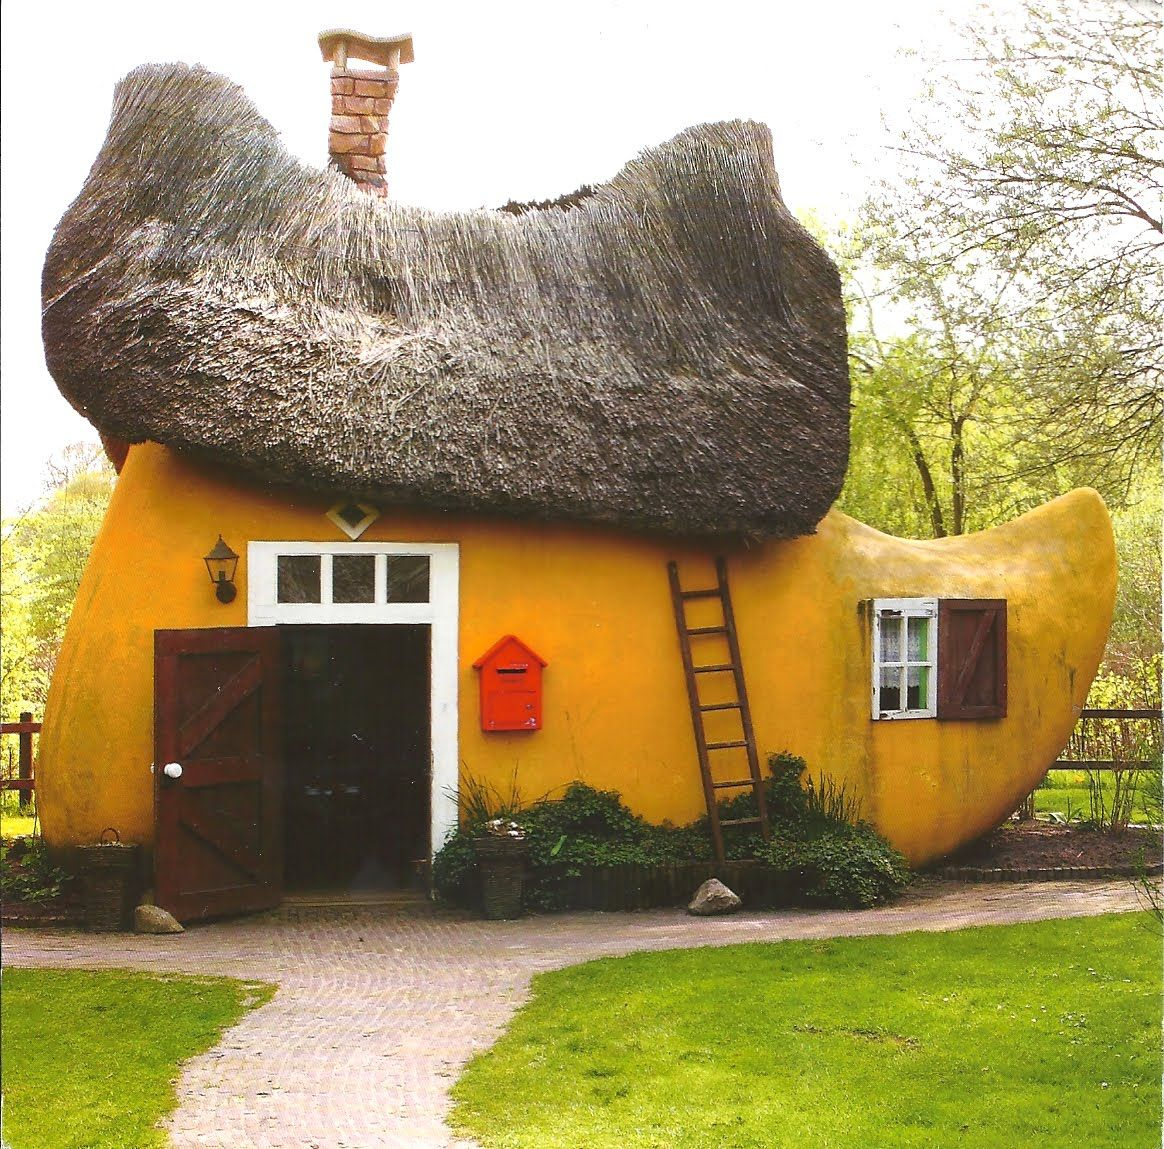 Its called a Klomp Huis, and its a tourist attraction in ...